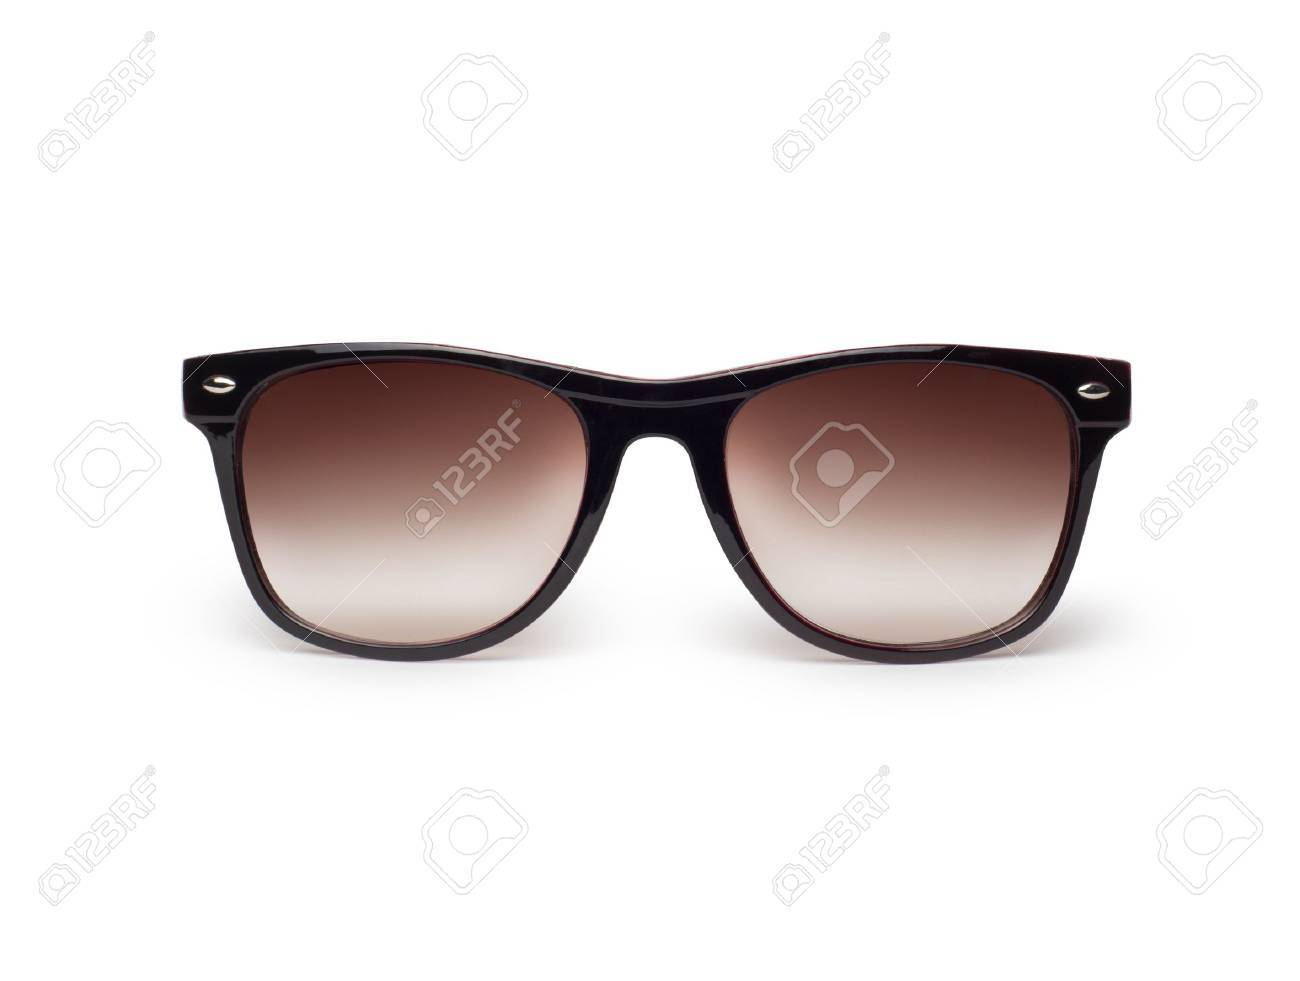 Sunglasses isolated against a white background Stock Photo - 17908796